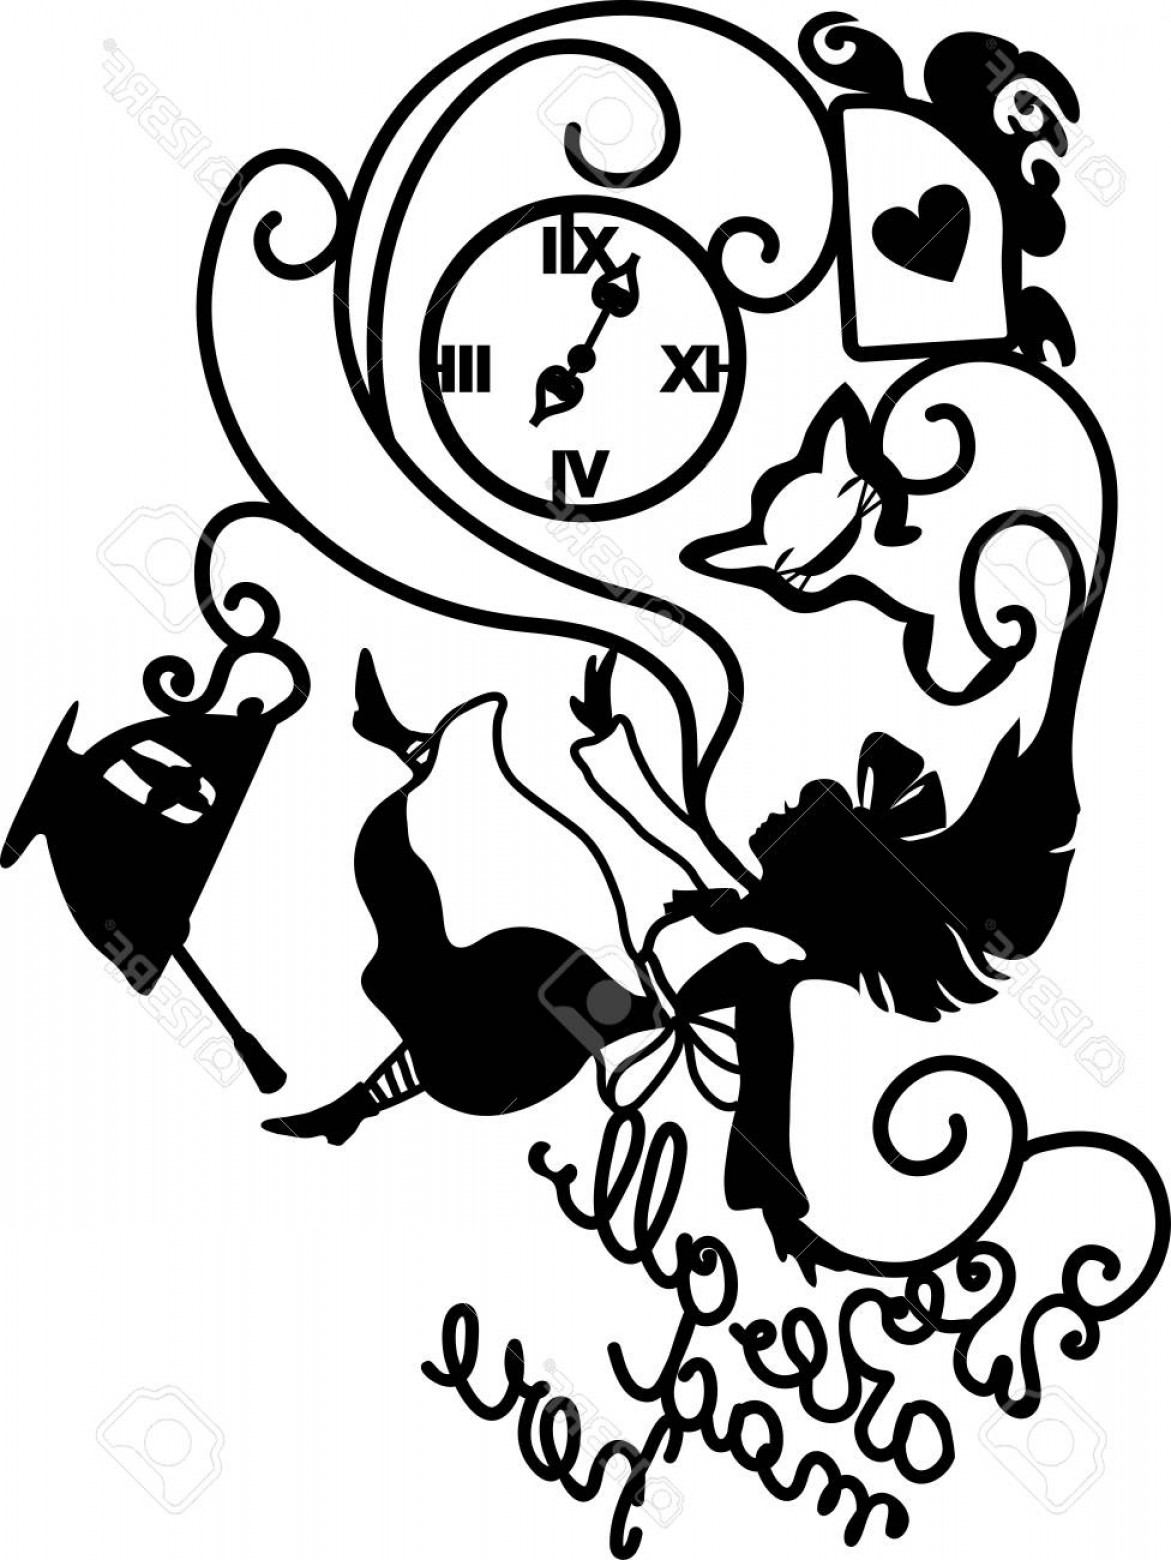 Mad Vector: Photostock Vector Alice In Wonderland Vector Illustration We Are All Mad Here Fantasy Stylish Illustration For Cafe Me